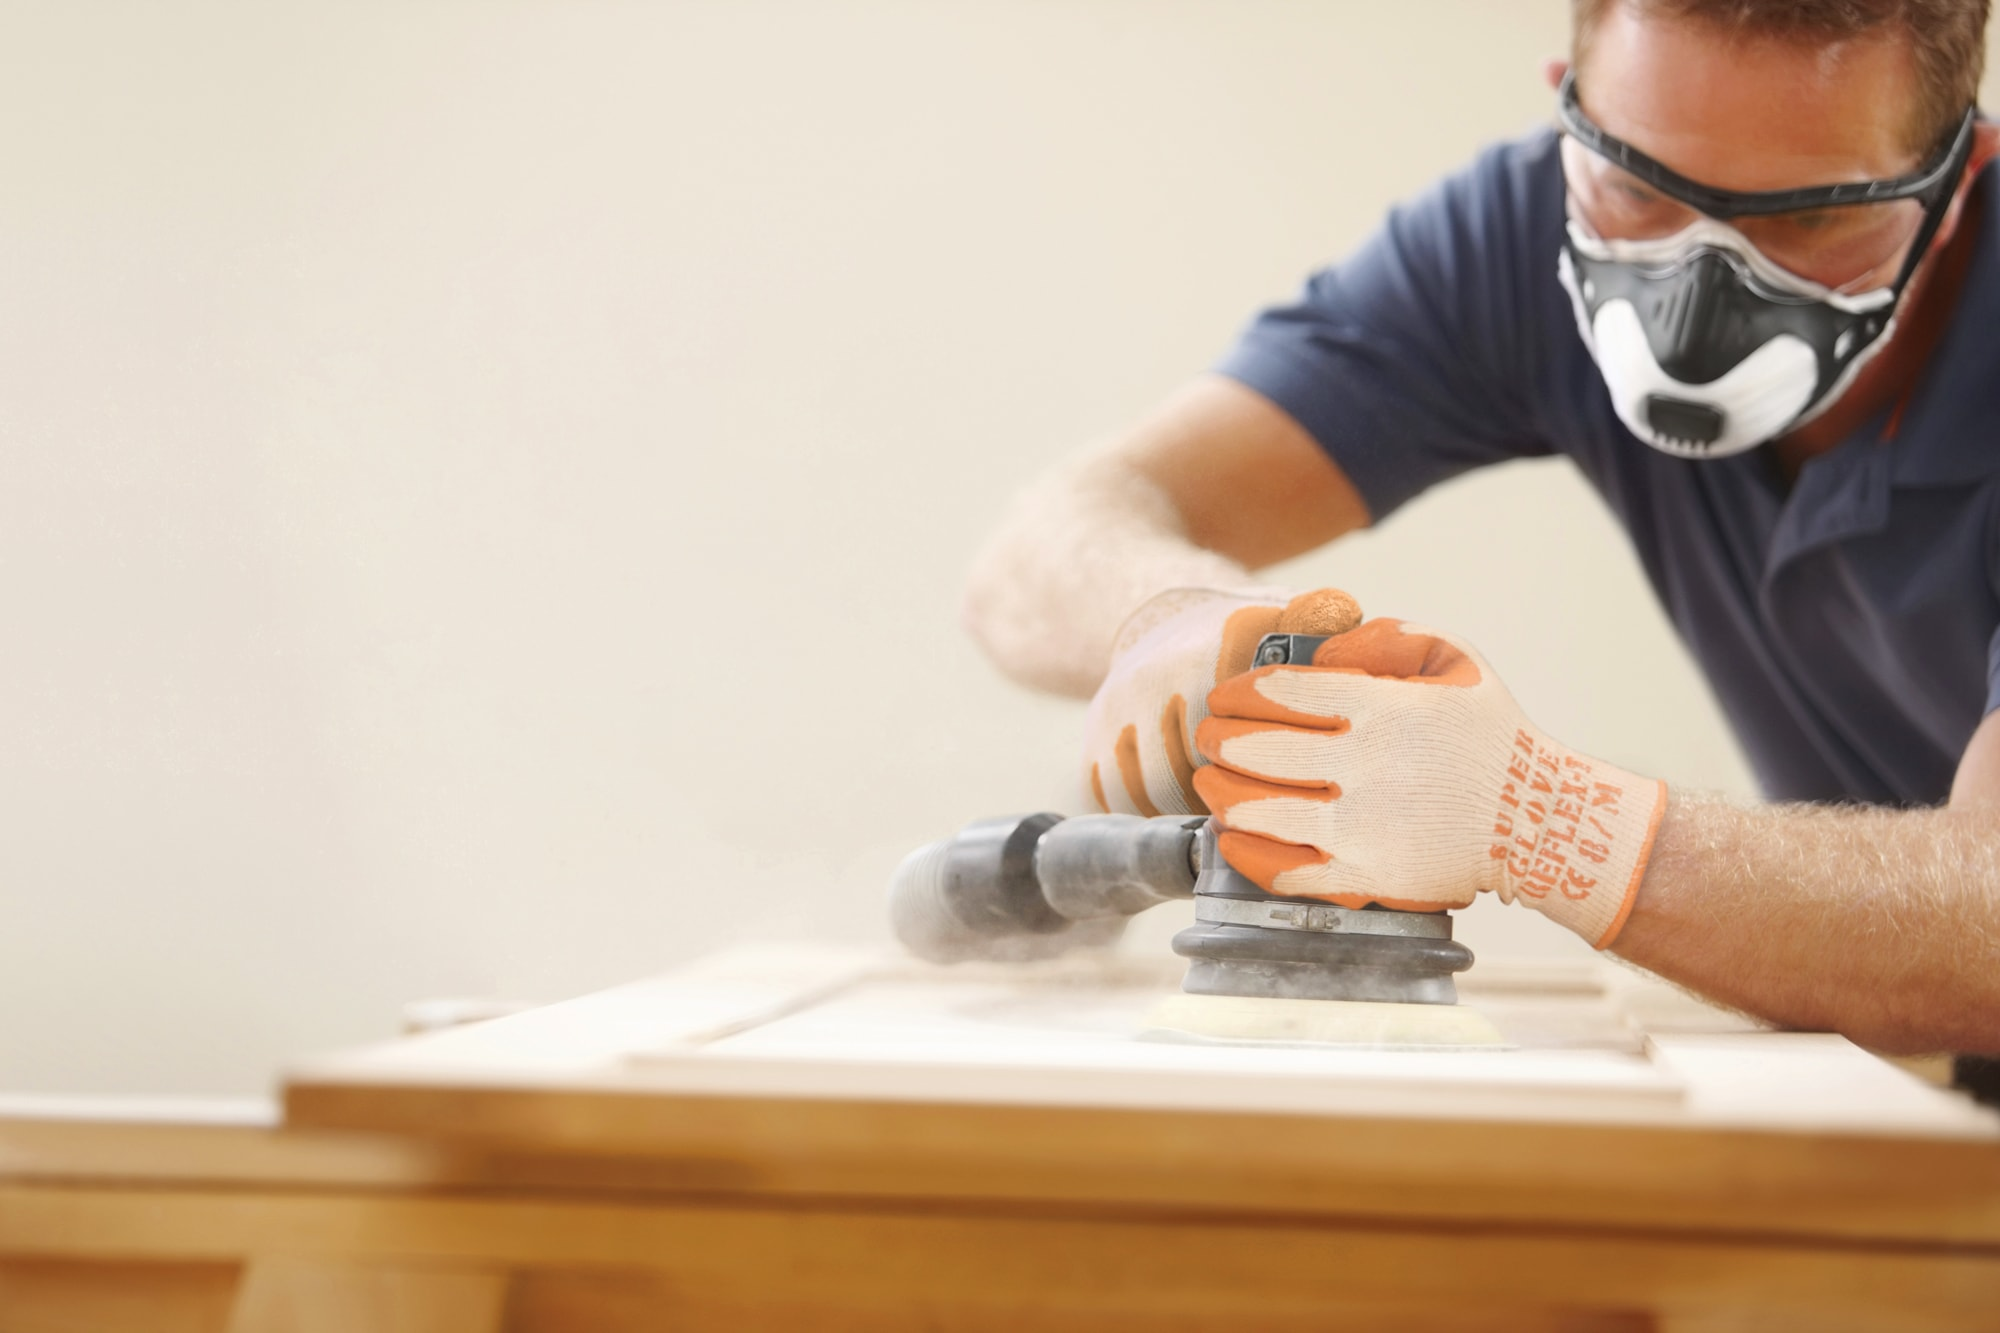 Sanding down a kitchen cupboard door